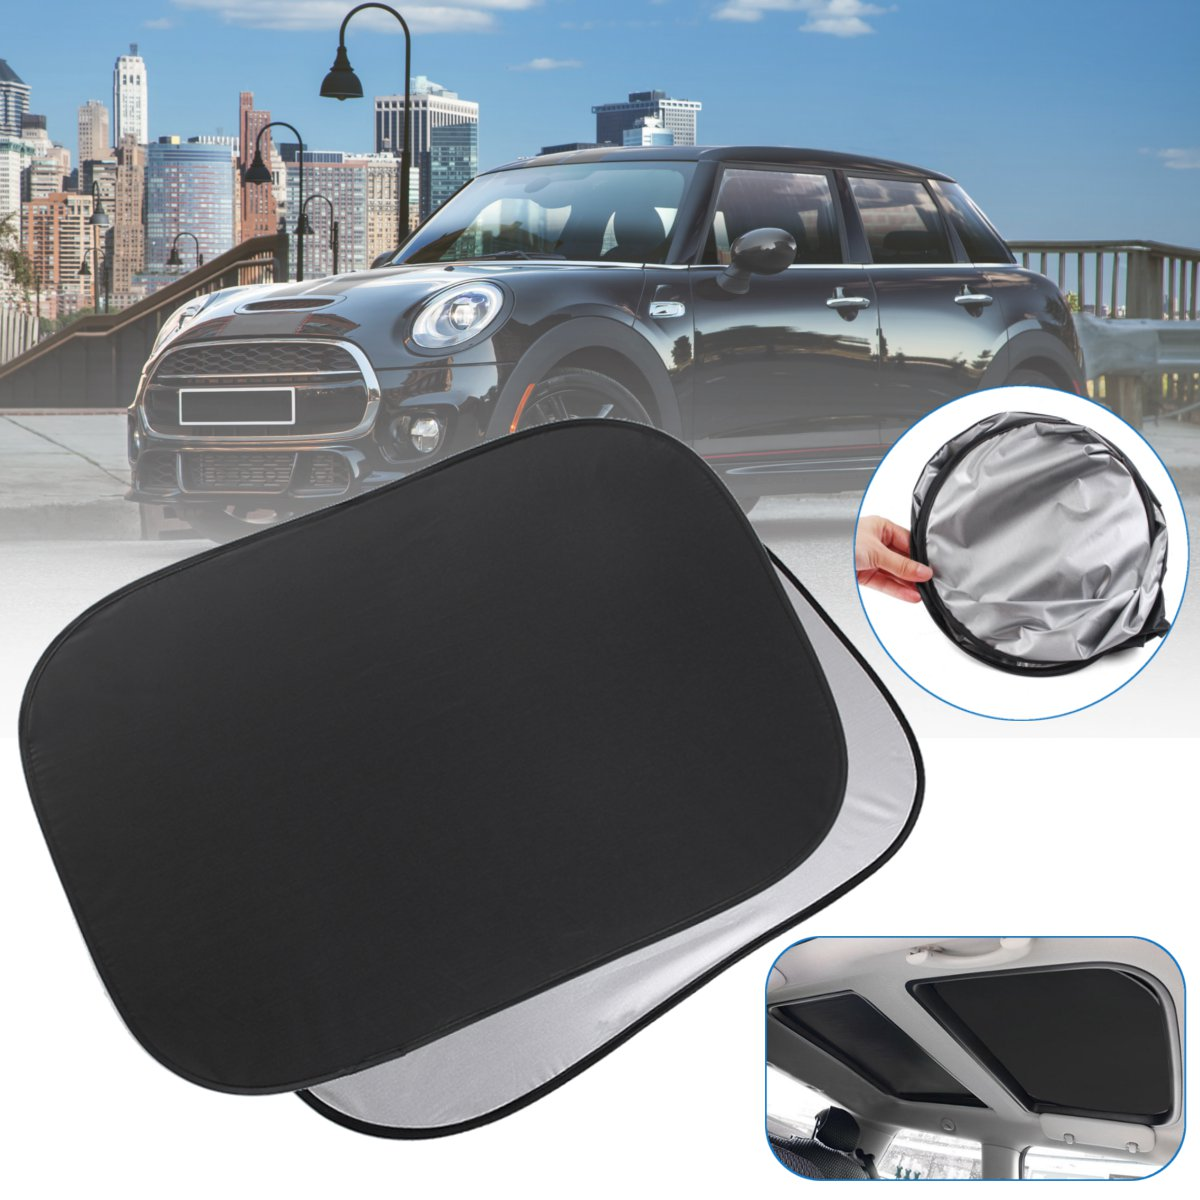 Sunroof Shade-Sunshade Sunshade-Decoration Window Heat-Isolat Foldable New for MINI Cooper